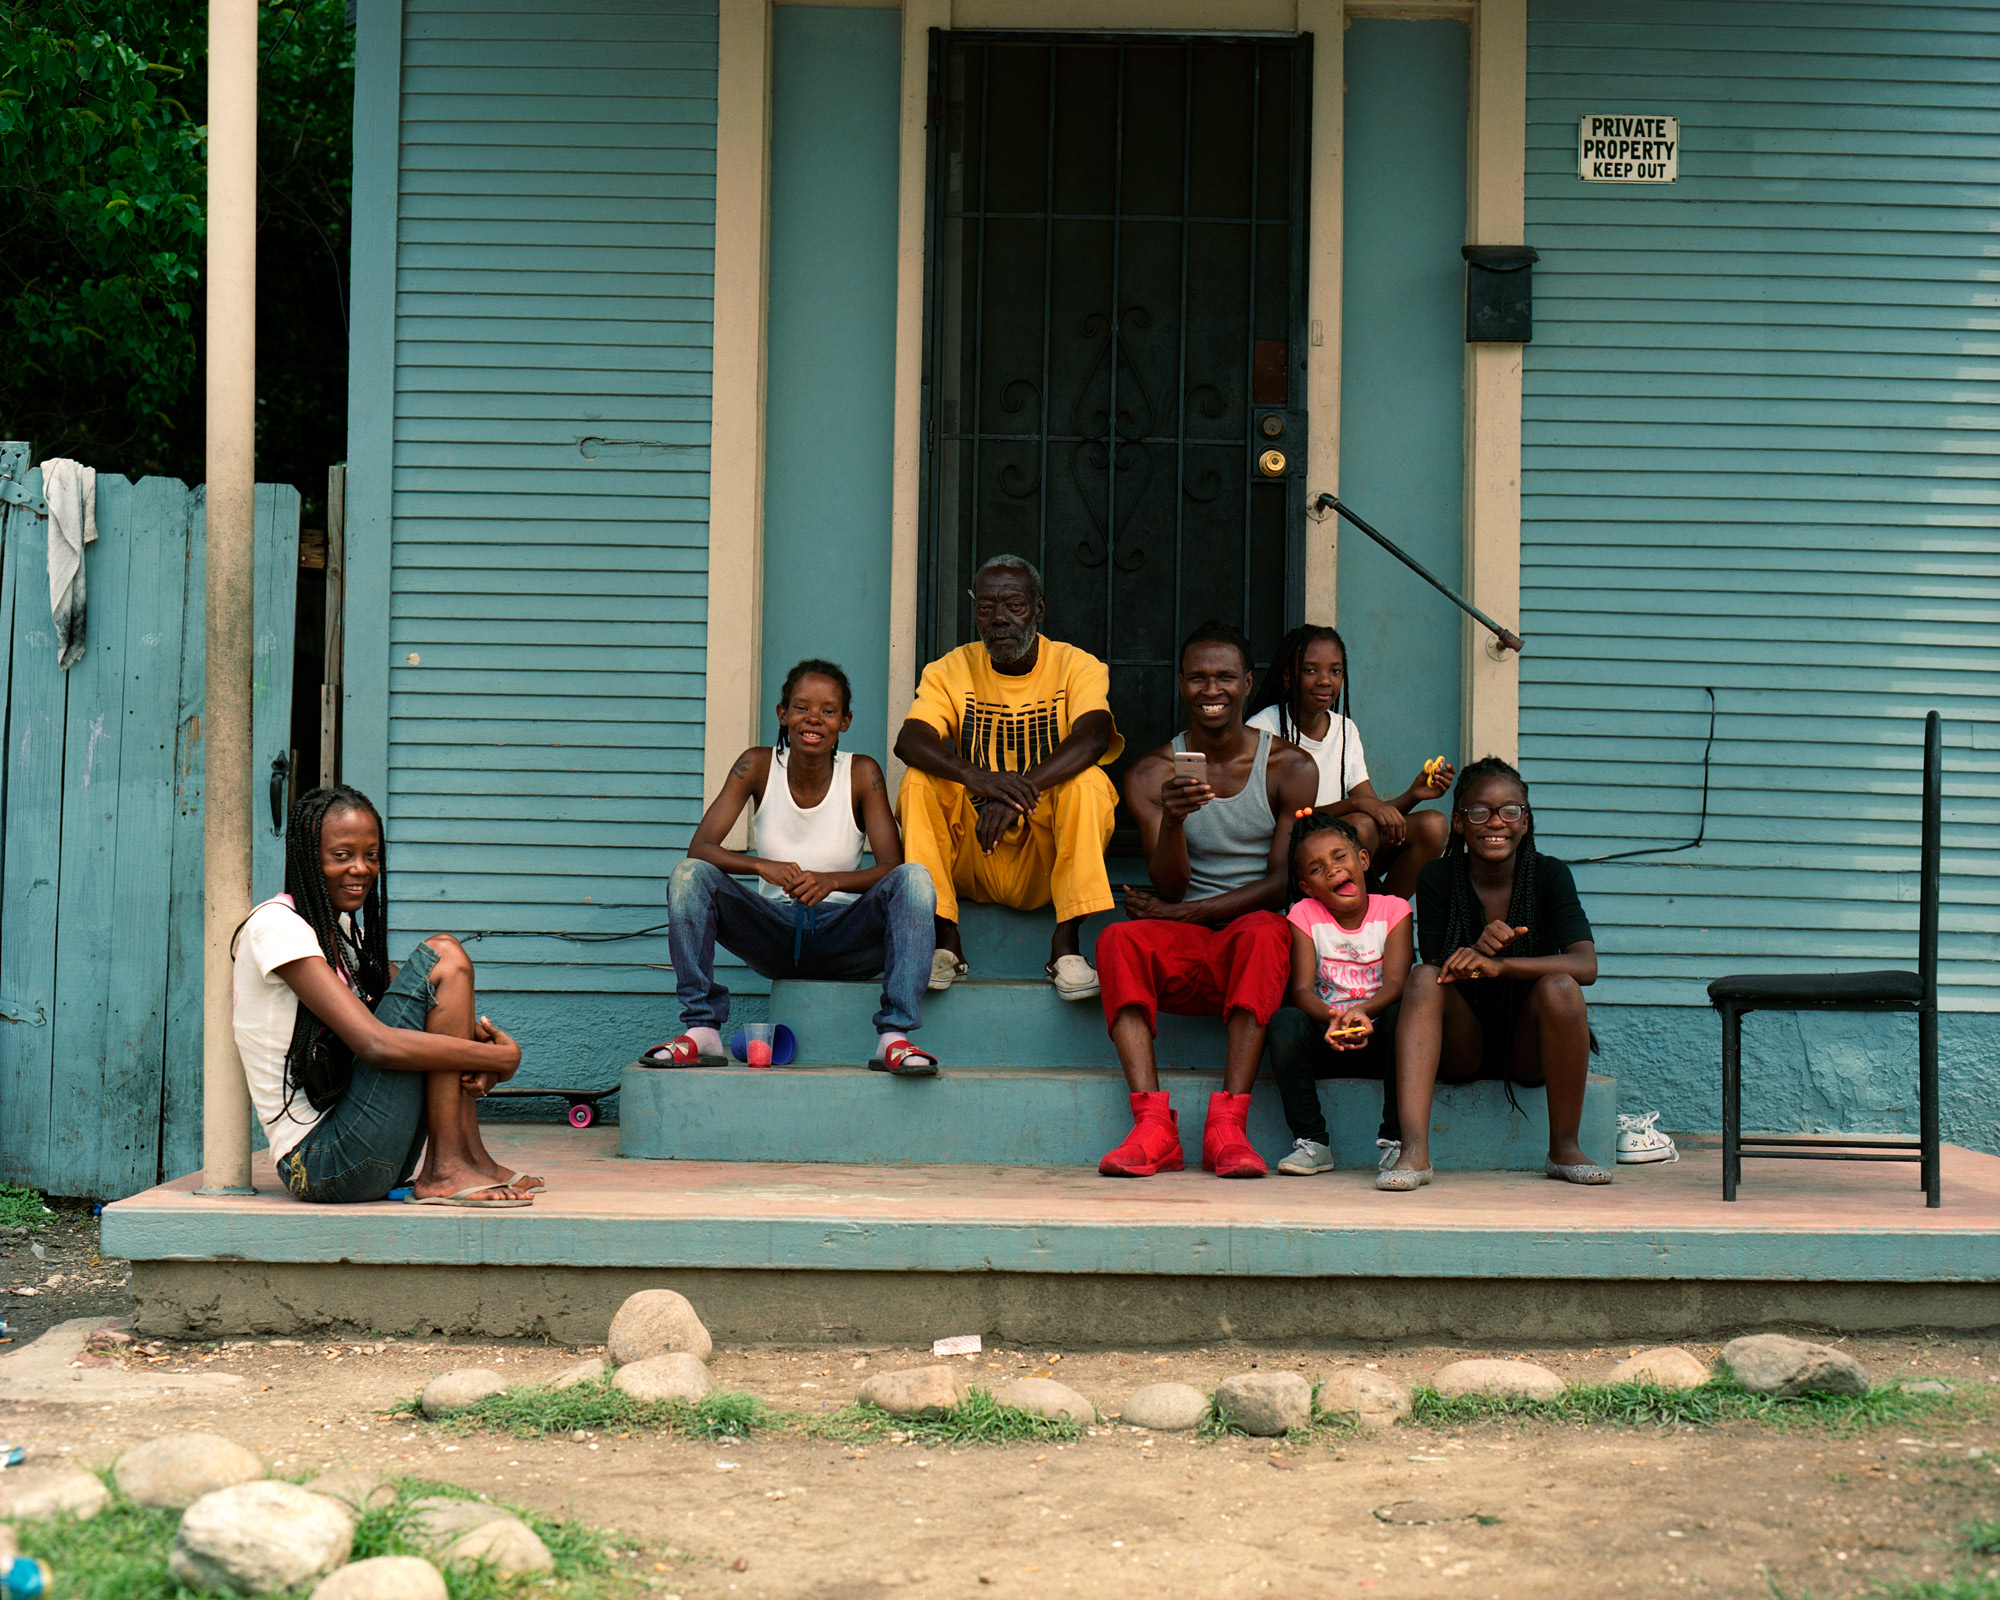 Family Sitting On Front Porch, Private Property, New-Orleans, Omg Your English, Photography By Ioannis Koussertari